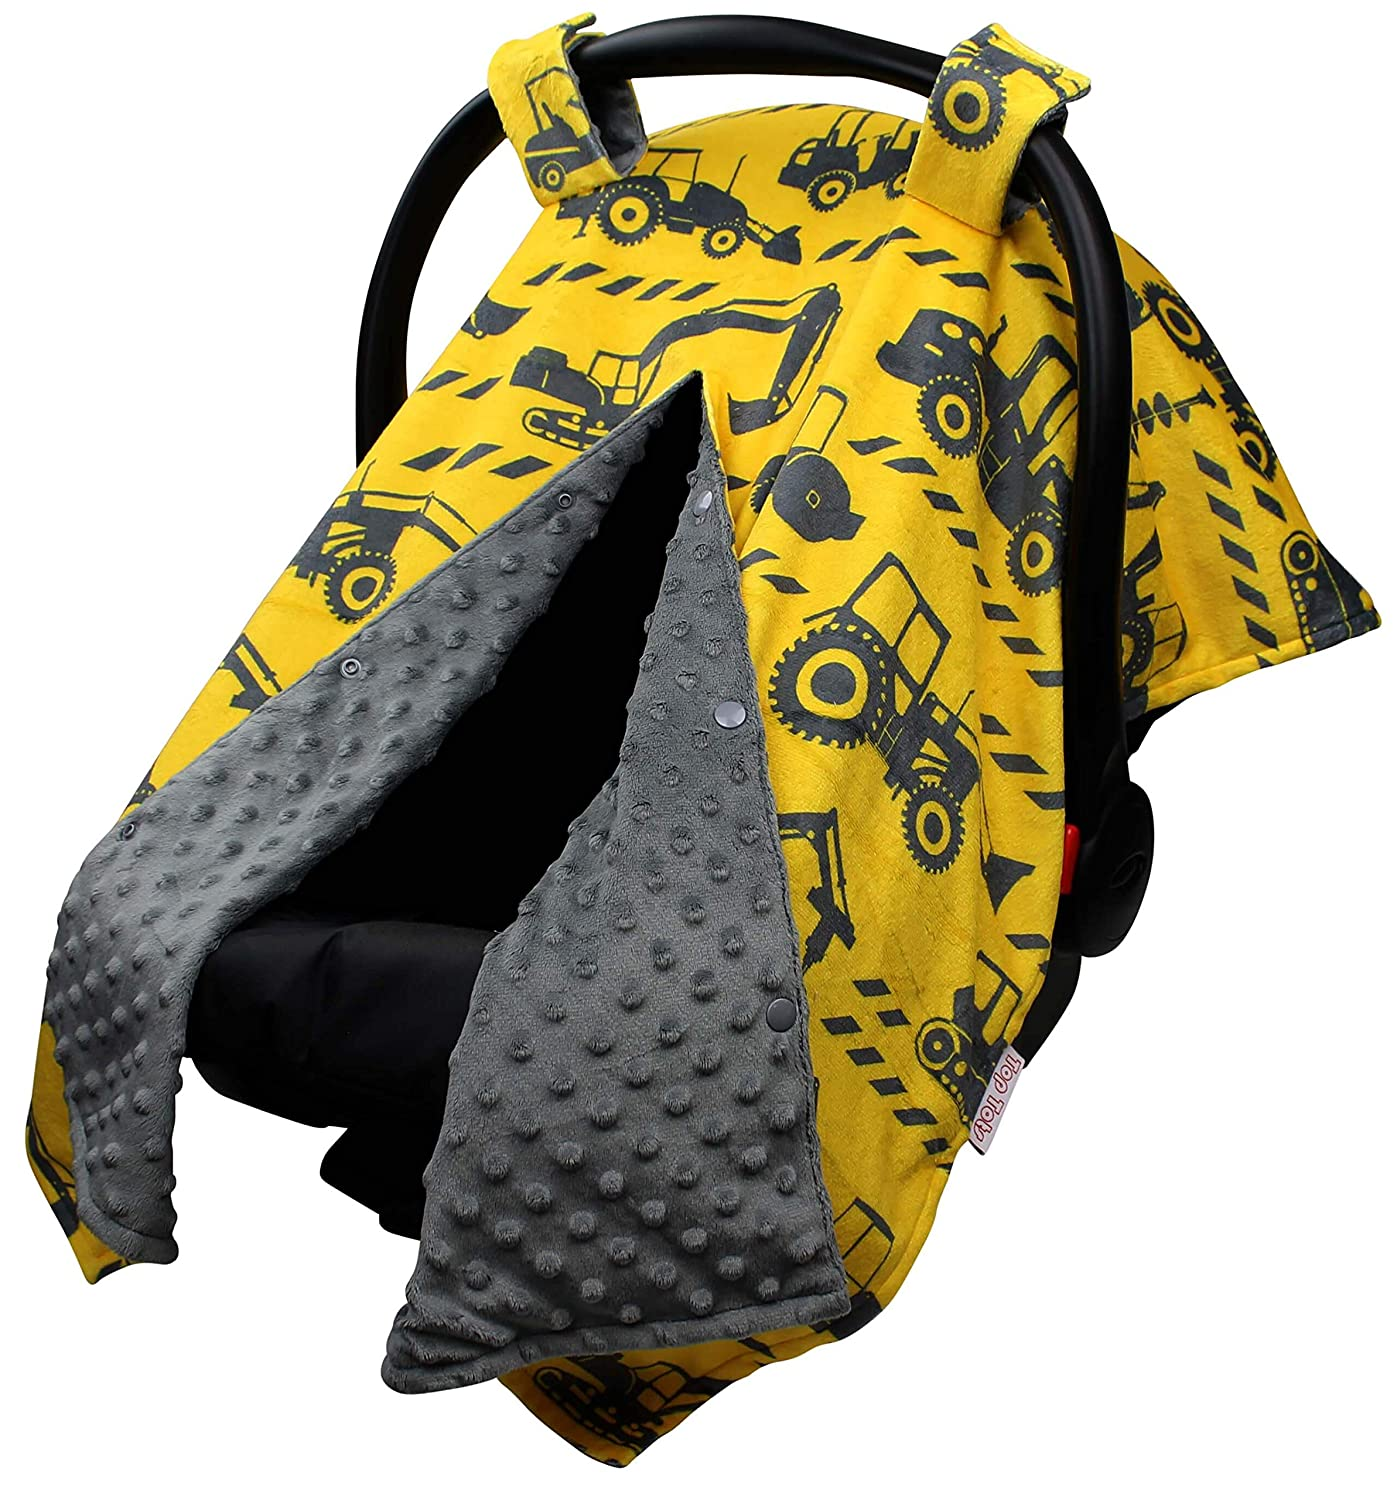 Baby Limited price sale Car Seat Canopy Cover - Yellow Tractors M Indefinitely on Grey with